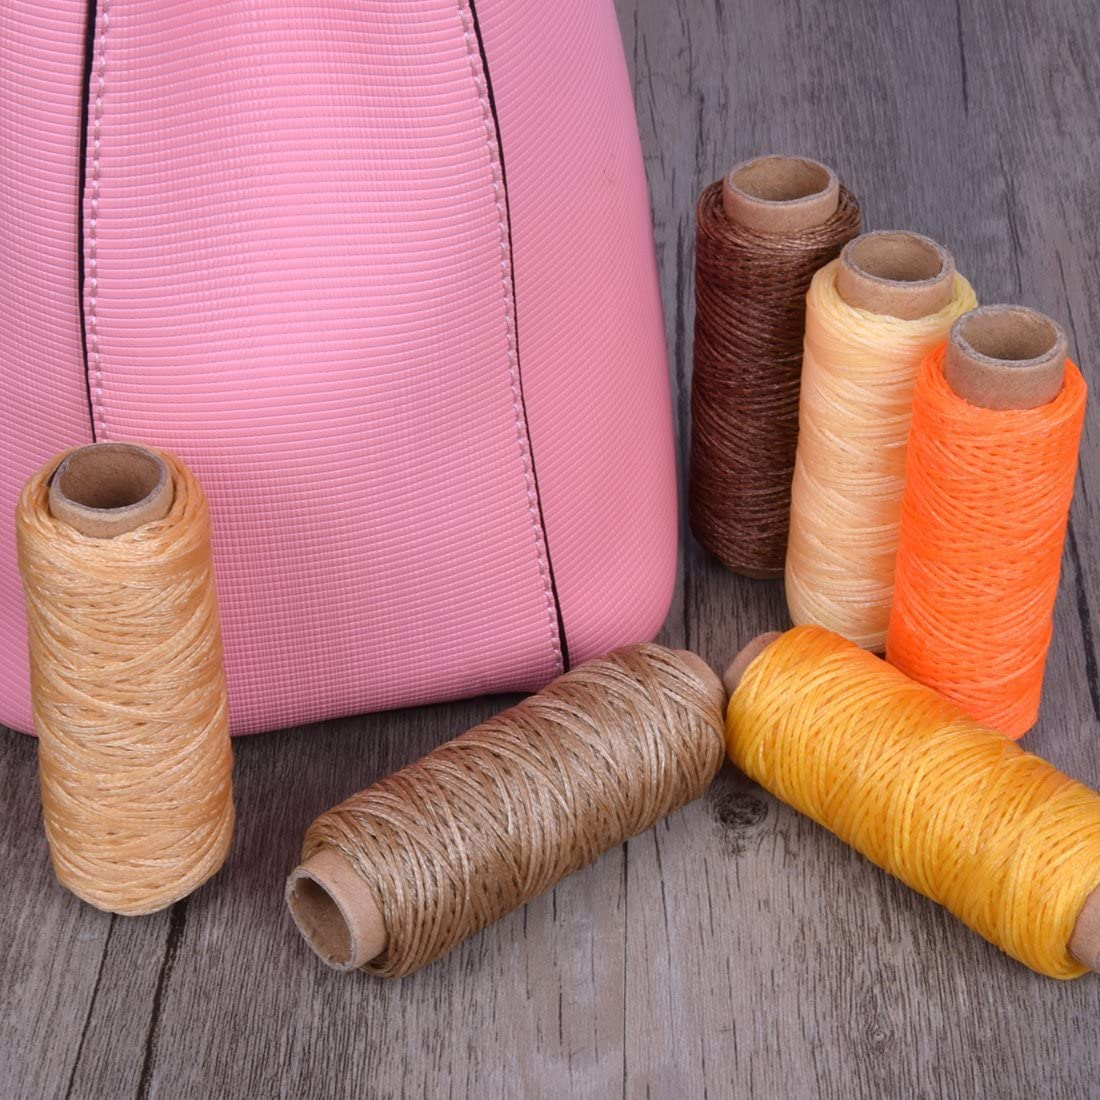 Hotusi 5pcs 50 Meter 1mm Leather Waxed Wax Thread Cord Craft for DIY Tool Stitching